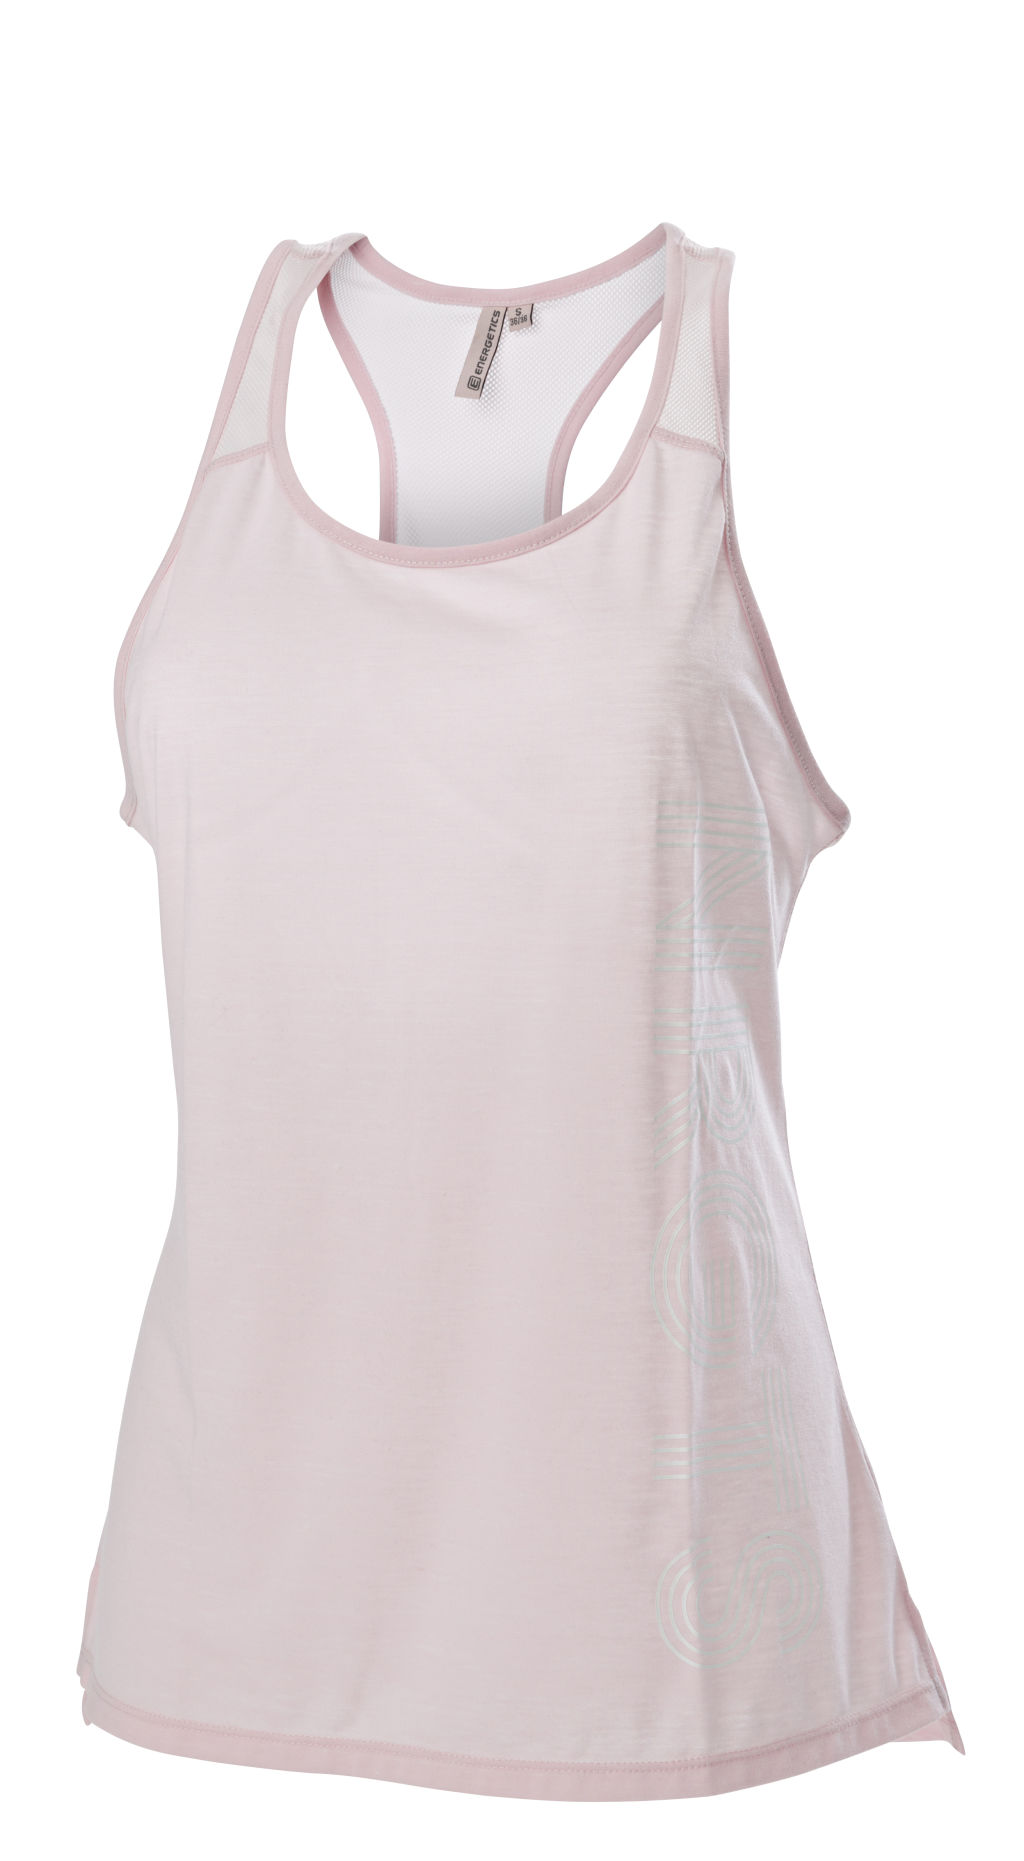 Energetics Mia Top W